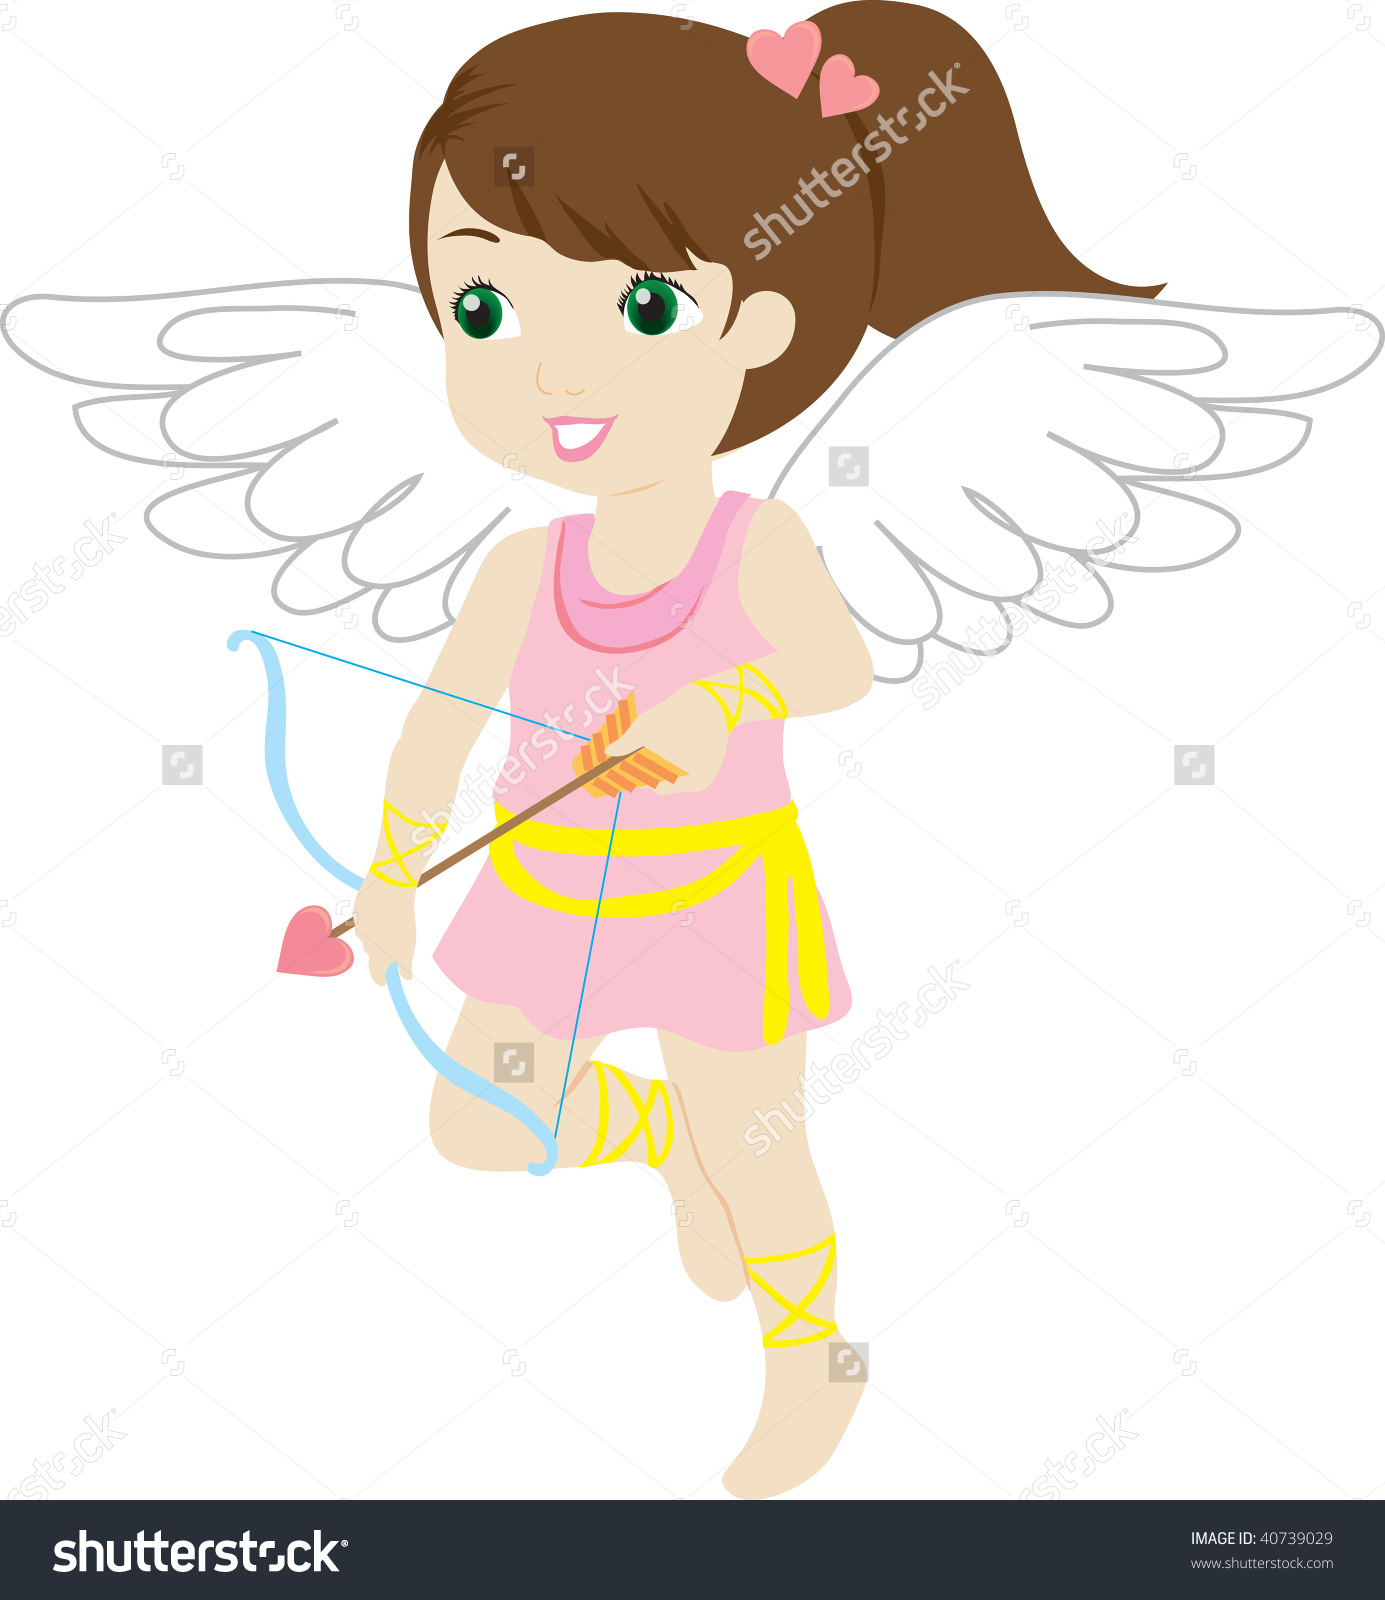 Clip Art Illustration Of A Little Girl Cherub Dressed In Pink And.